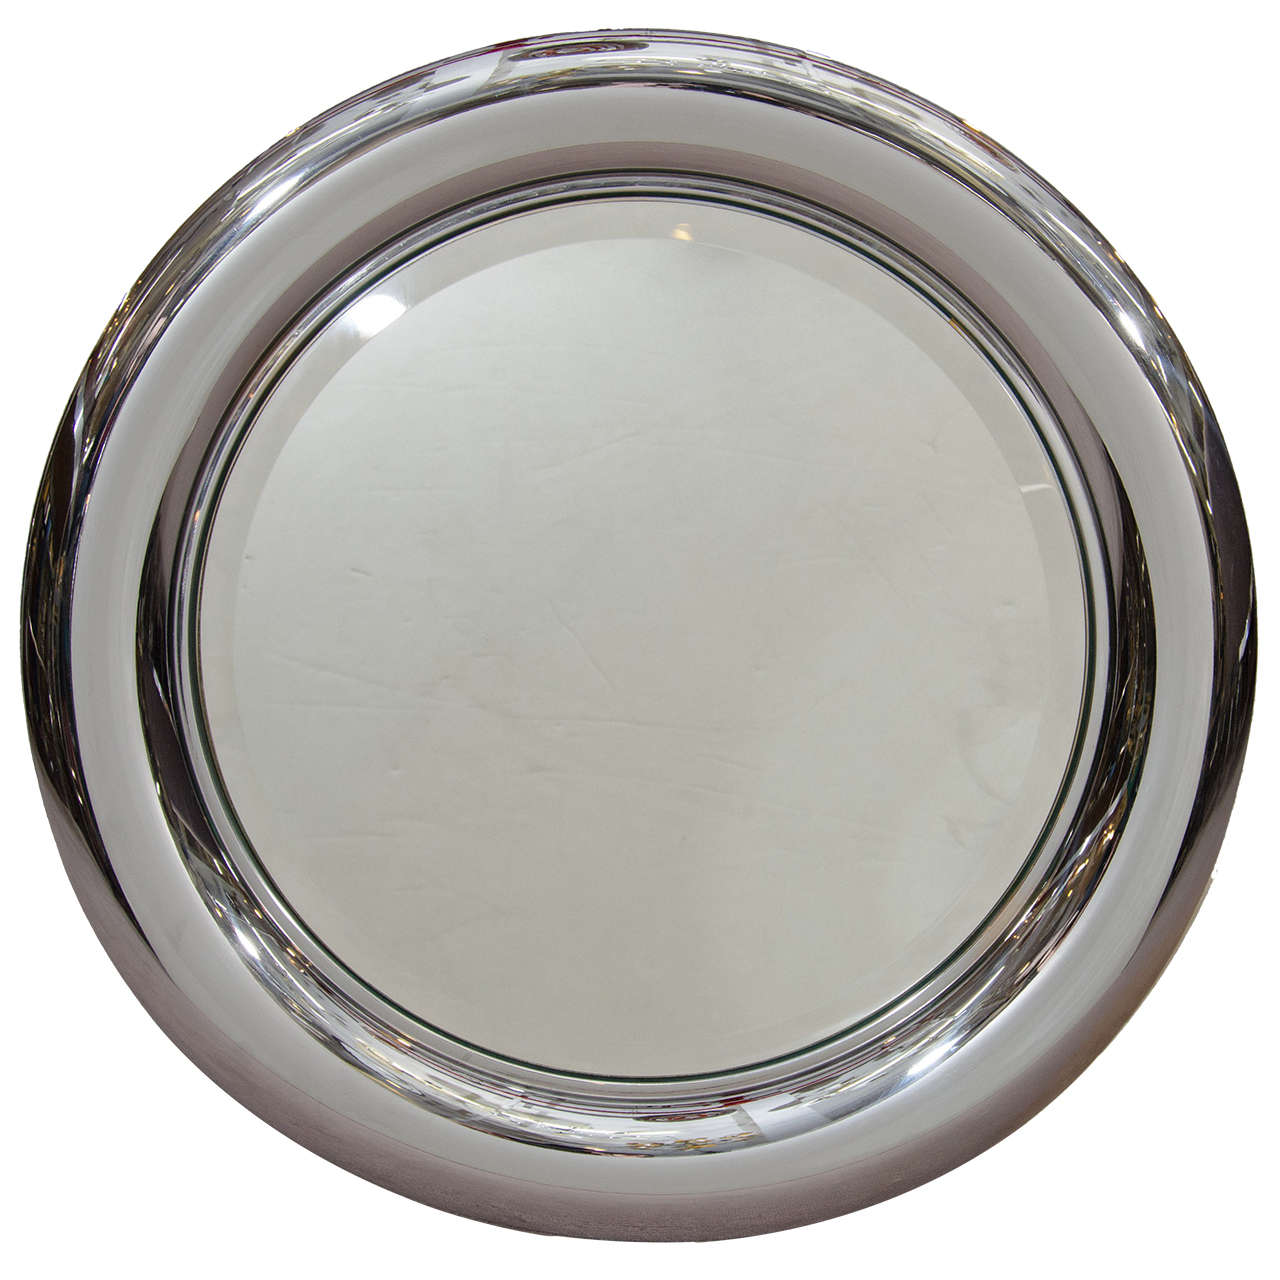 mid century italian chrome framed wall mirror by regianni 1